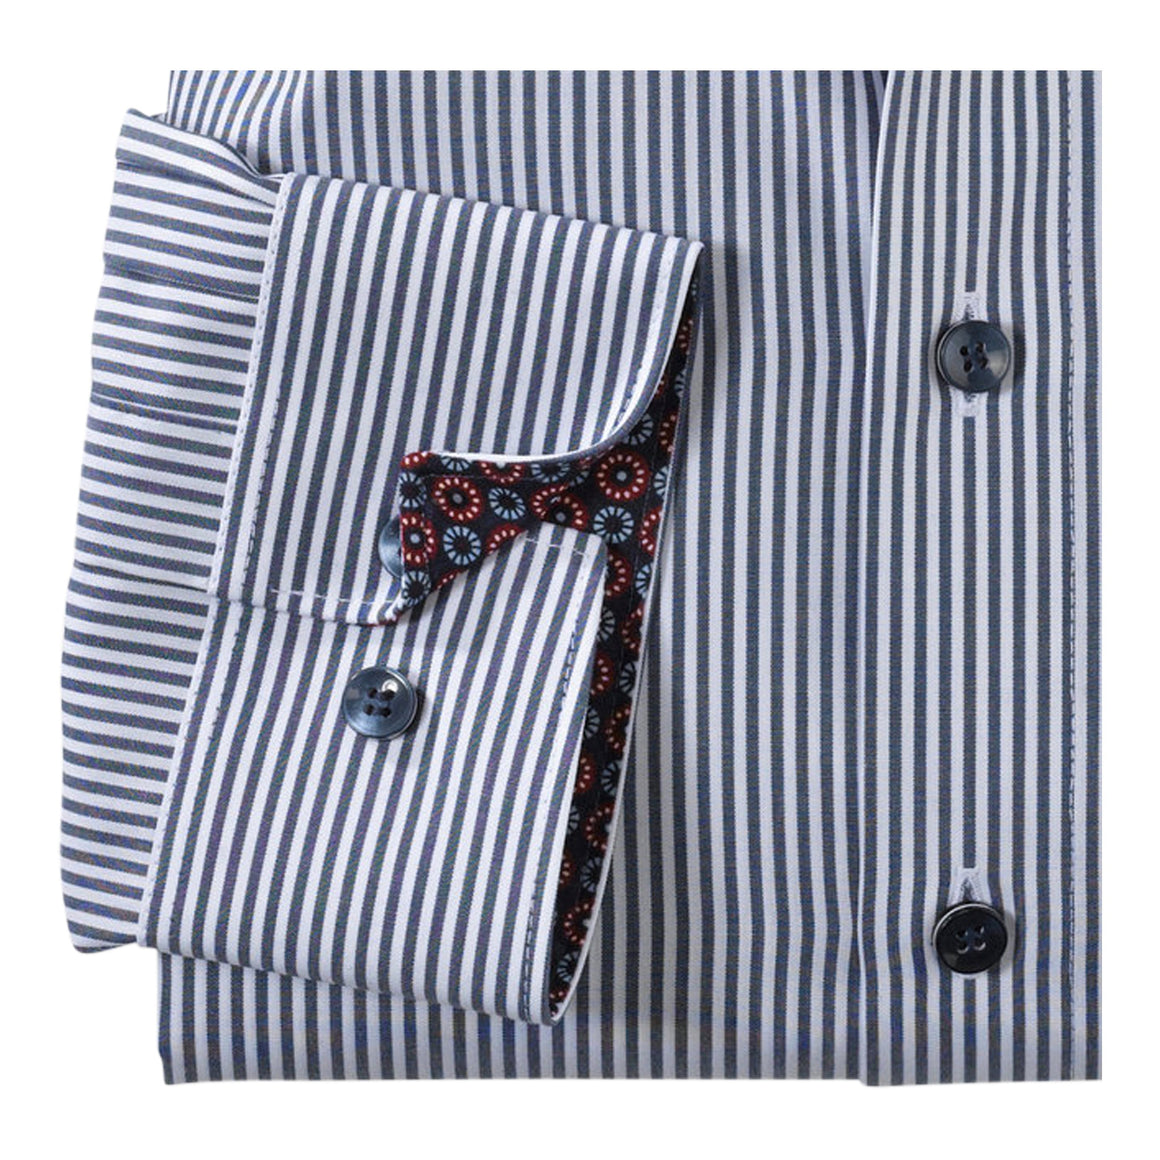 Pinstripe Shirt for Men in Royal